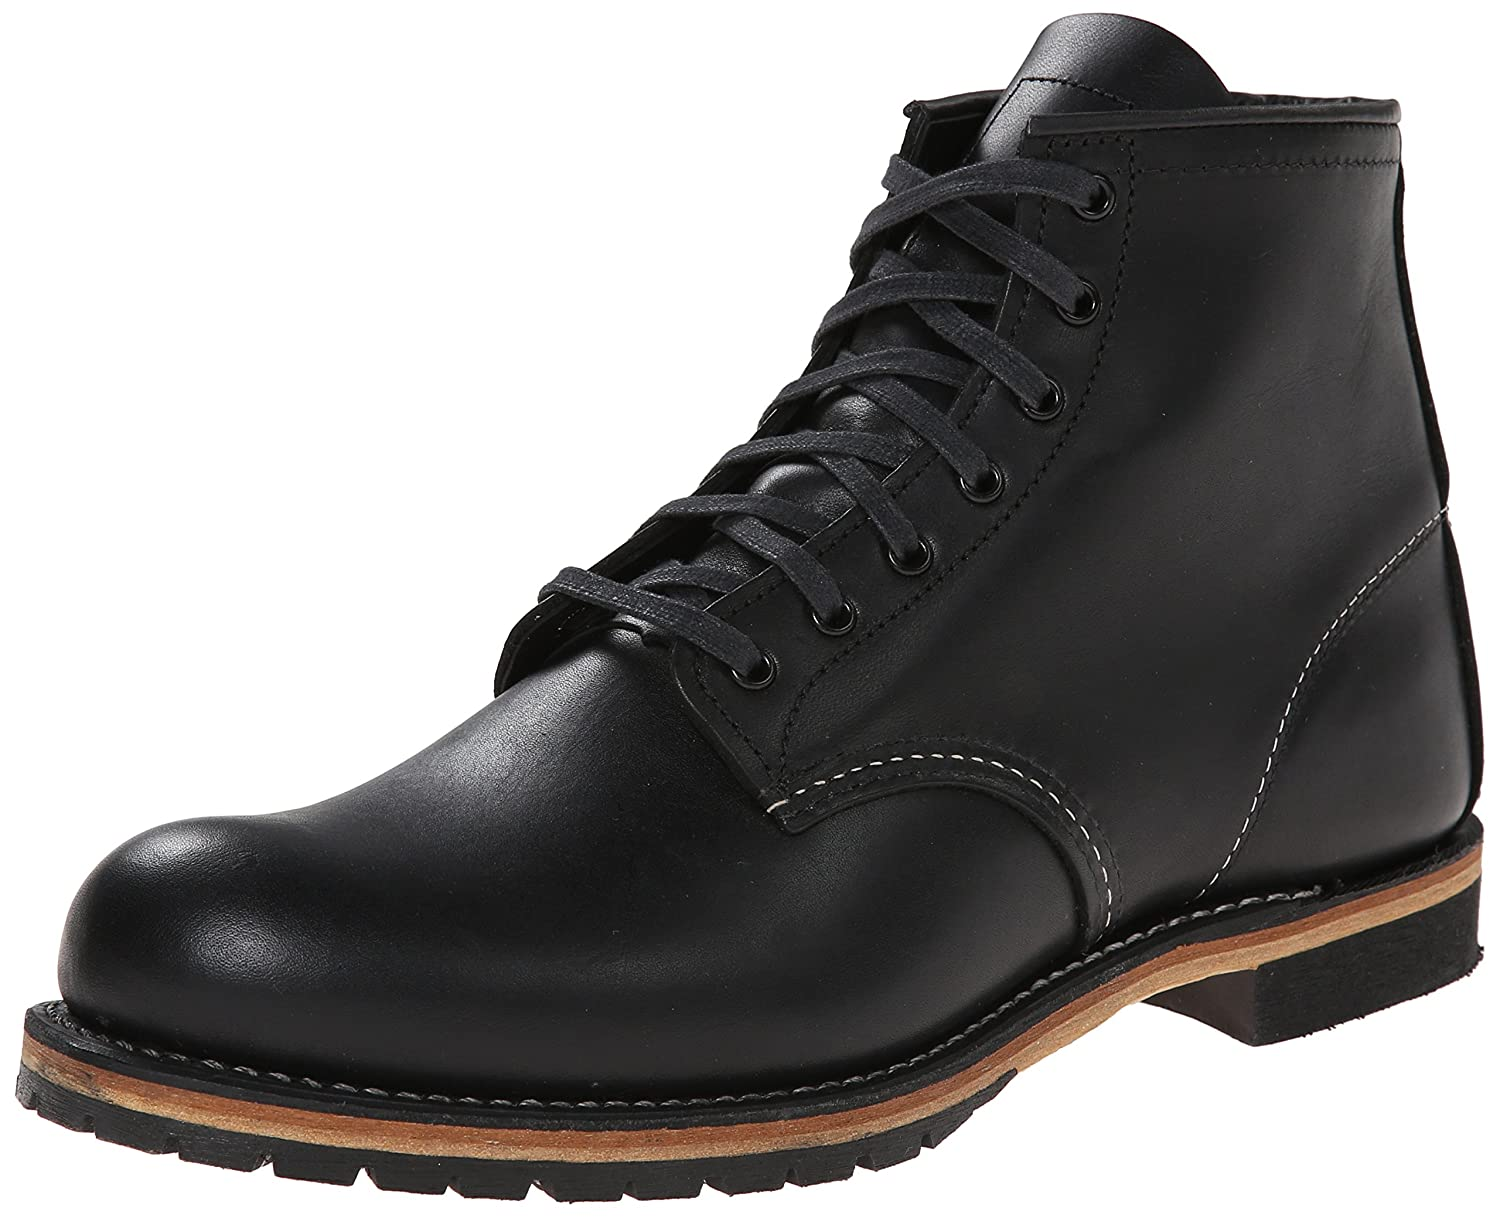 1920s Style Mens Shoes | Peaky Blinders Boots Red Wing Heritage Mens Beckman Round 6 Boot $397.89 AT vintagedancer.com